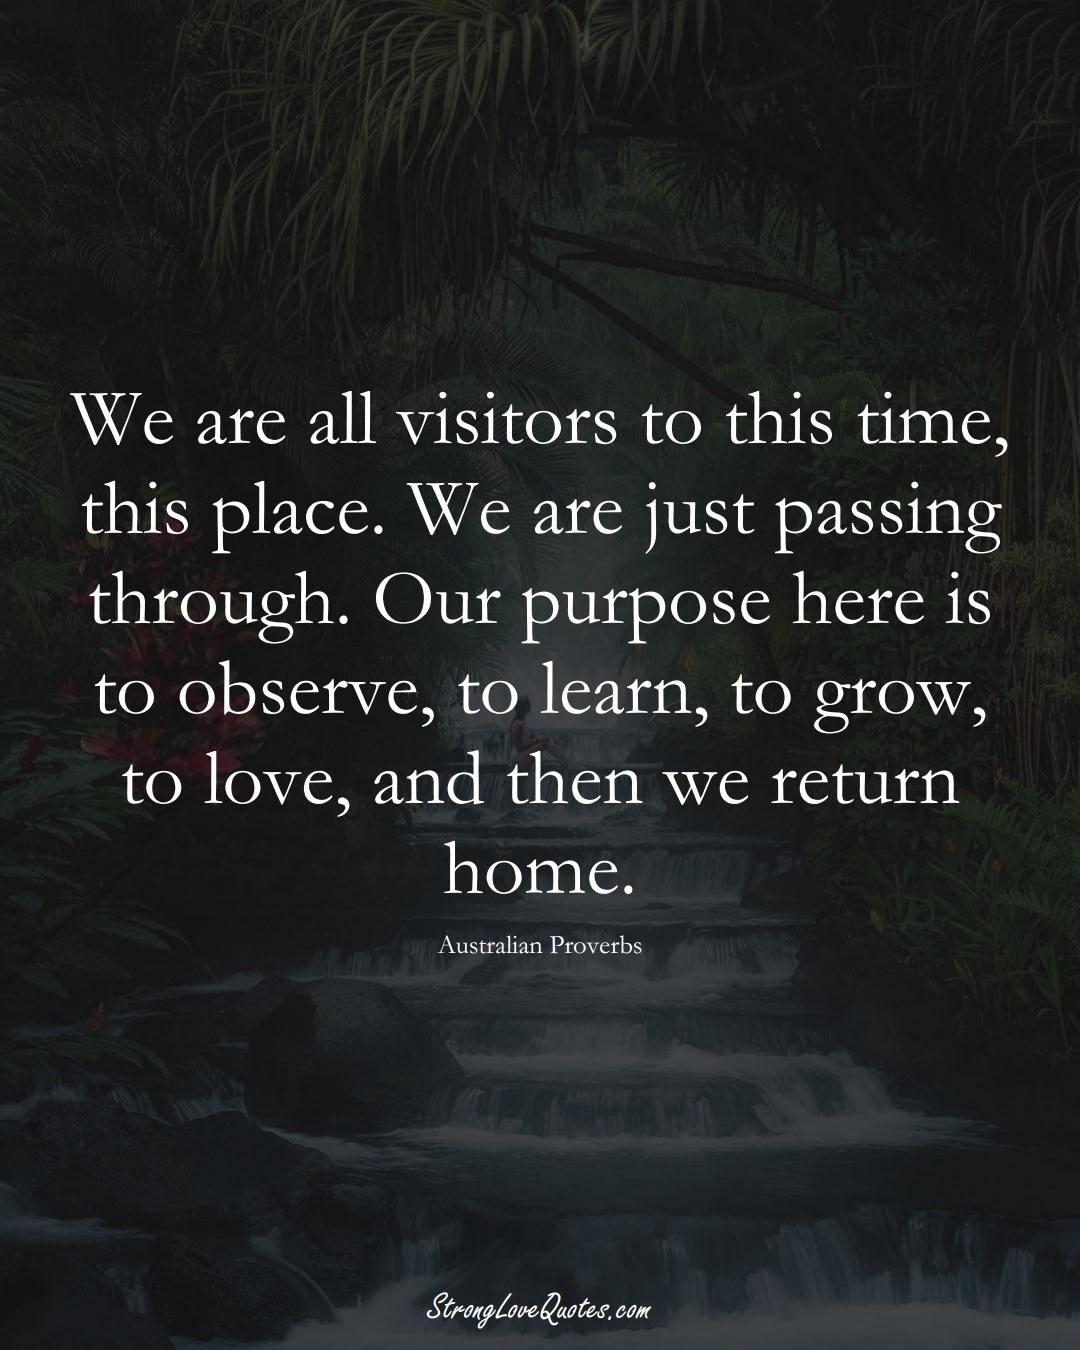 We are all visitors to this time, this place. We are just passing through. Our purpose here is to observe, to learn, to grow, to love, and then we return home. (Australian Sayings);  #AustralianSayings